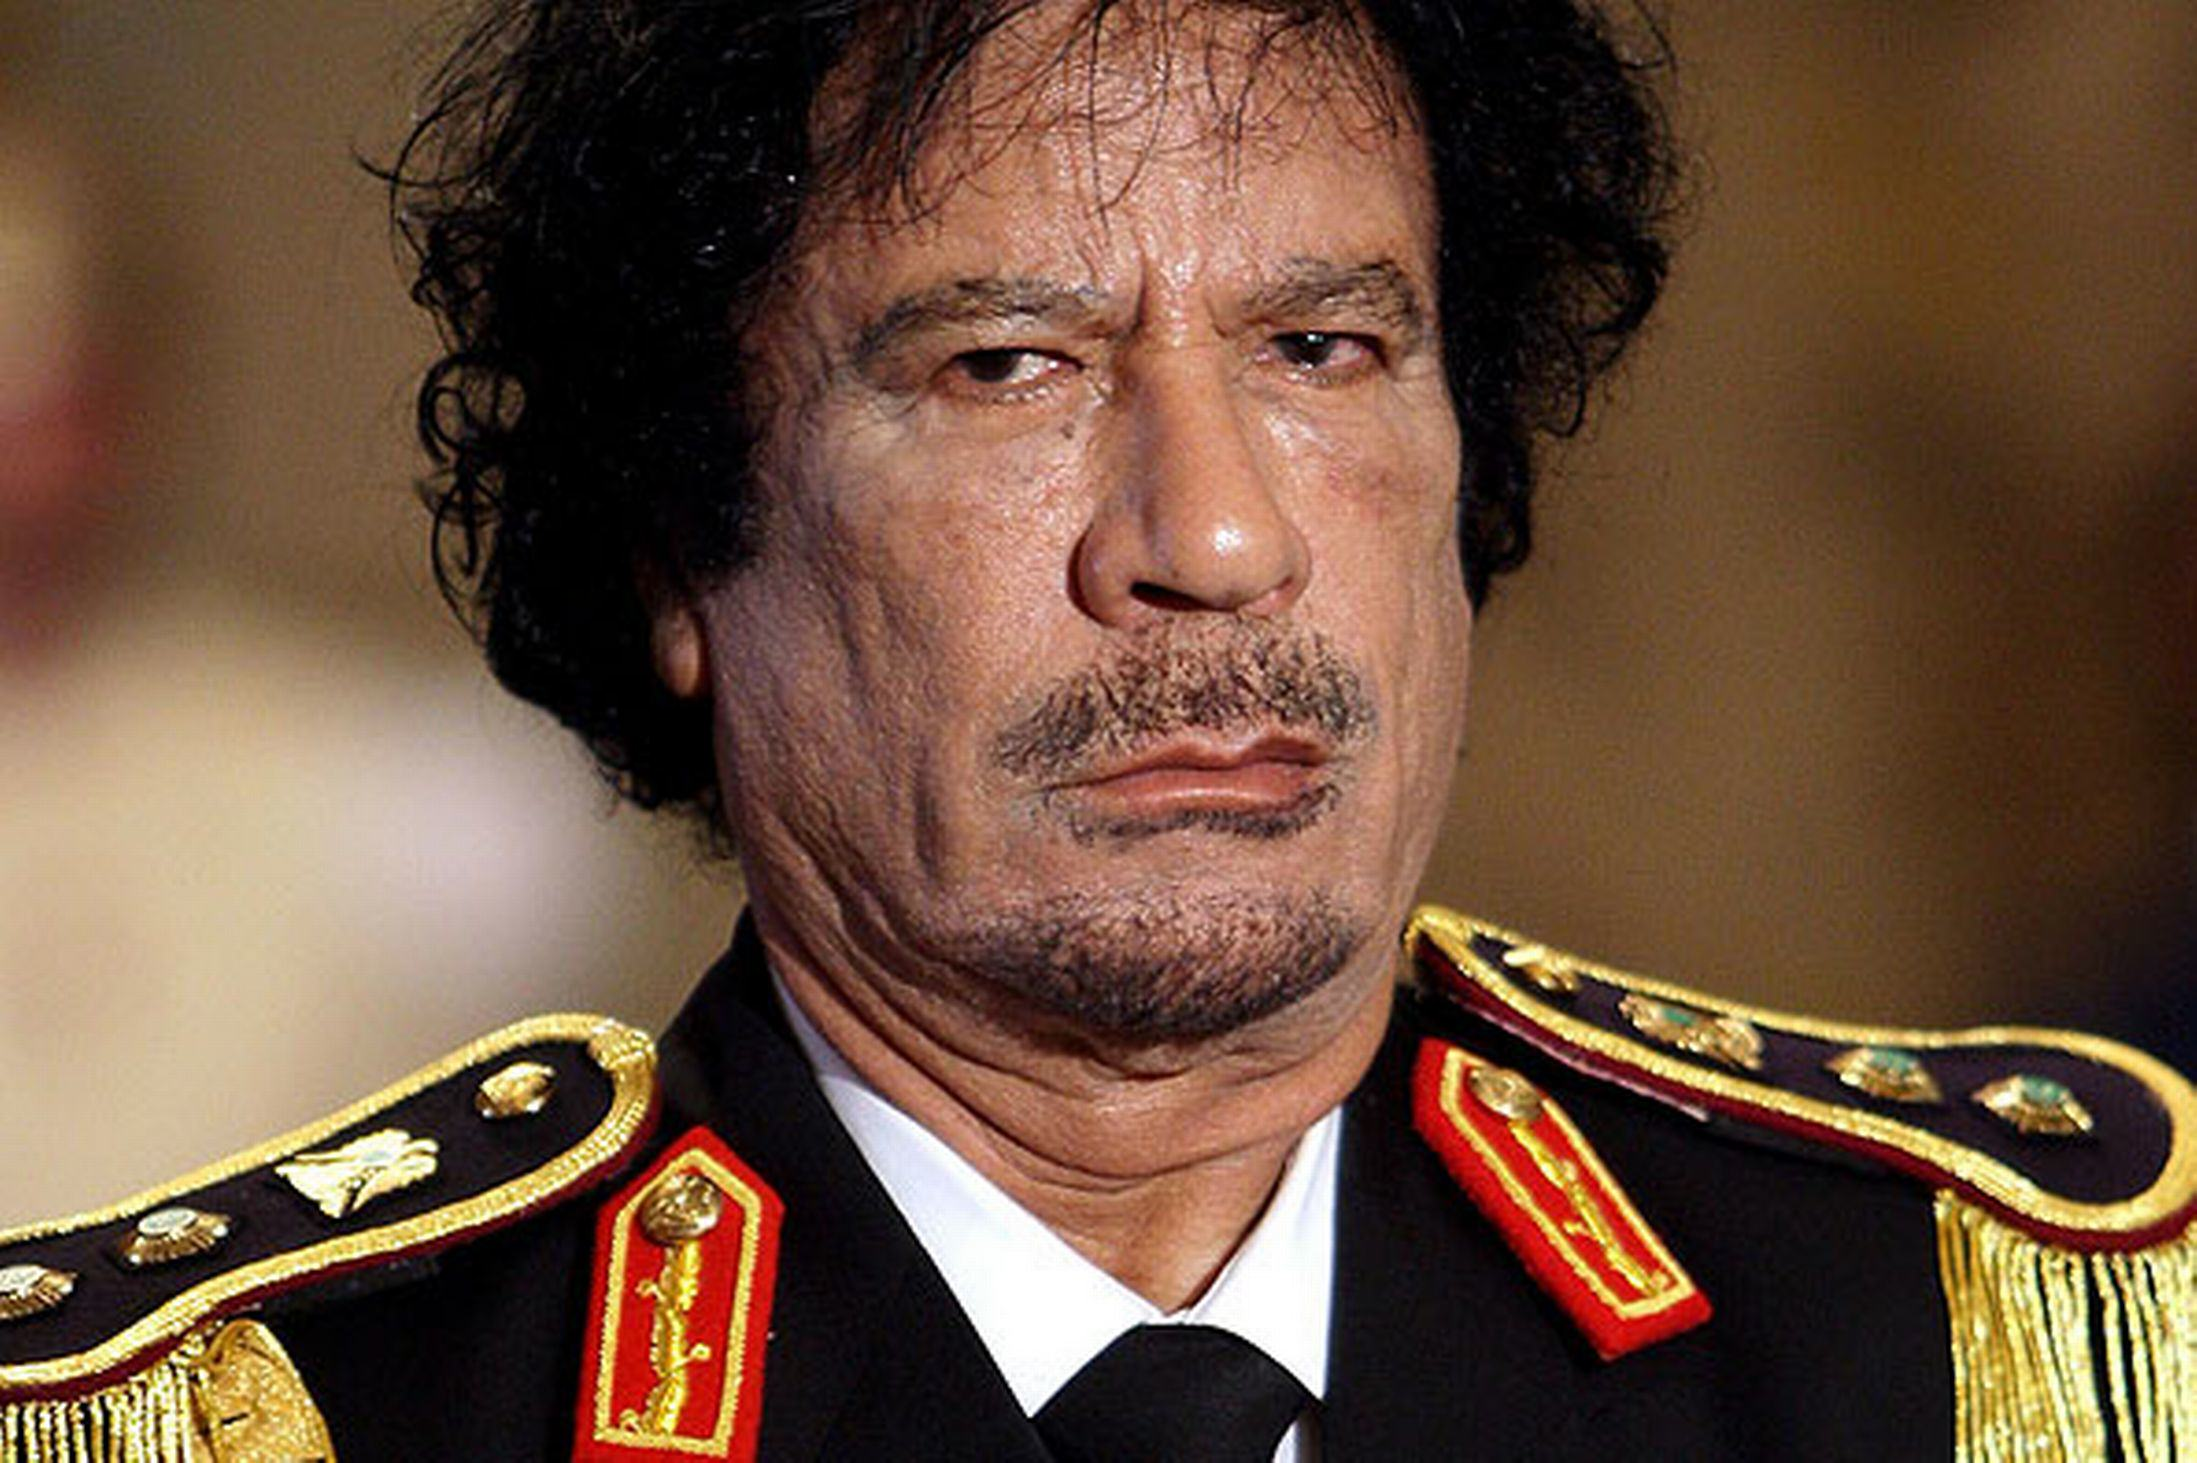 UNILAD colonel gaddafi pic reuters 6180439977 Leaked Email Shows Tony Blair Told Gaddafi To Hide And Avoid Capture